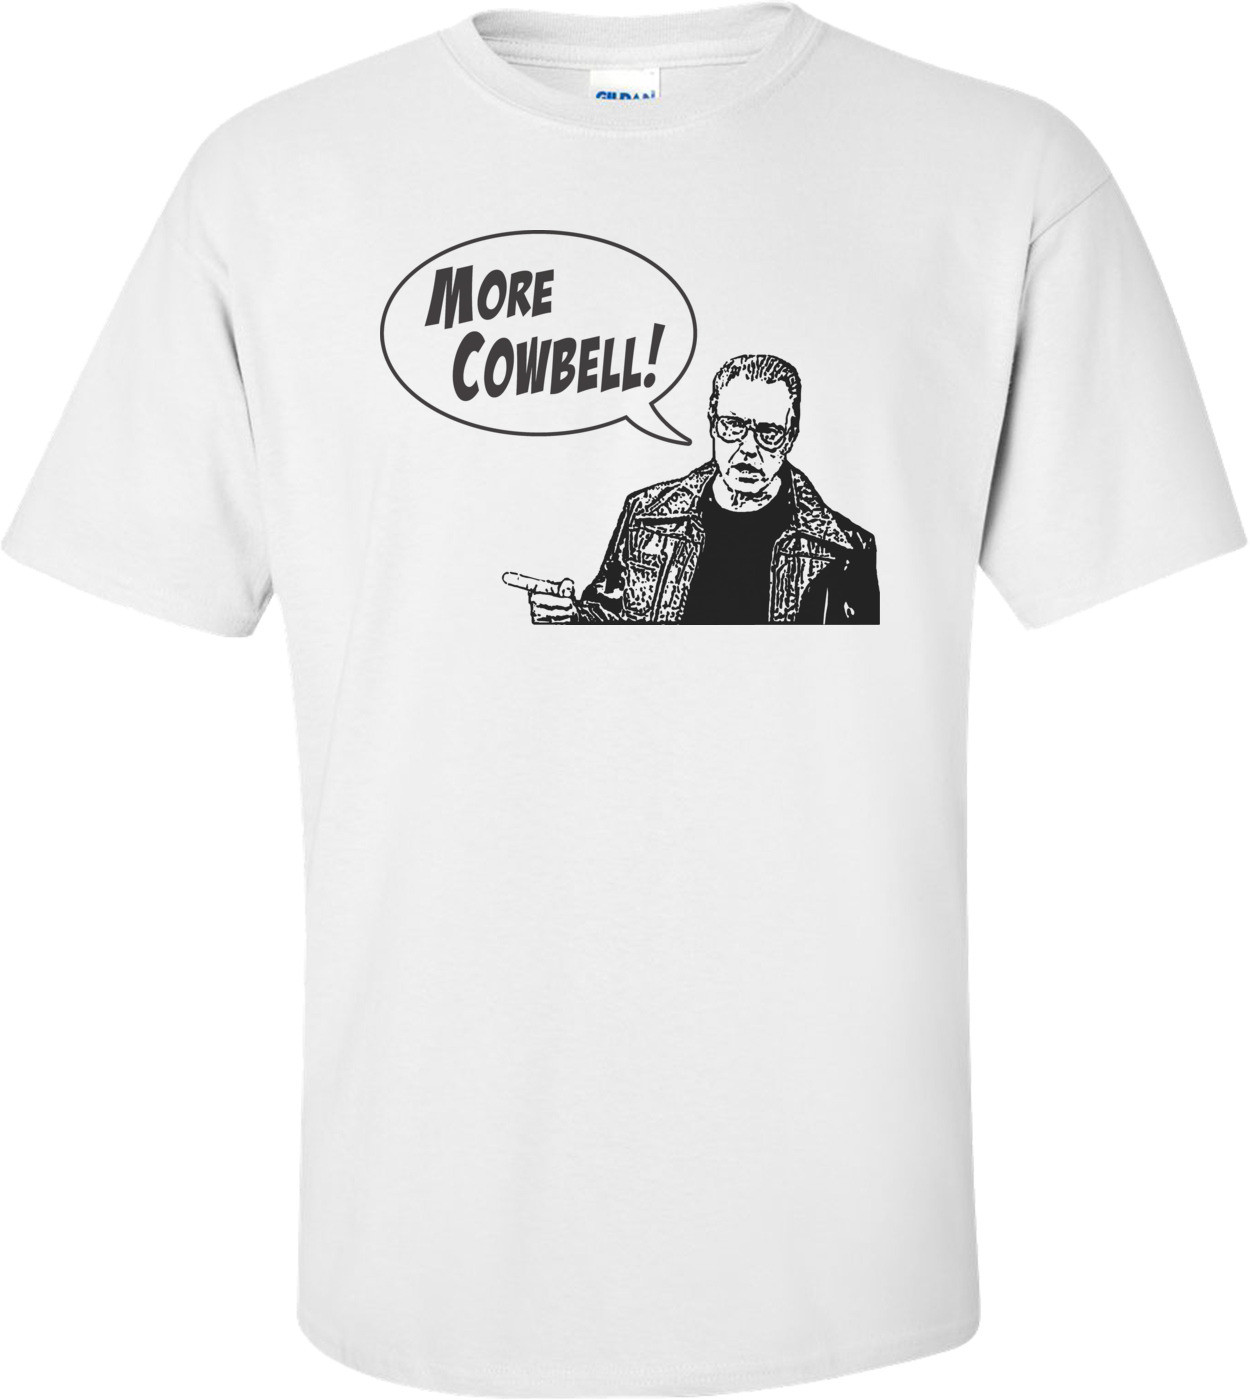 More Cowbell - Snl Shirt